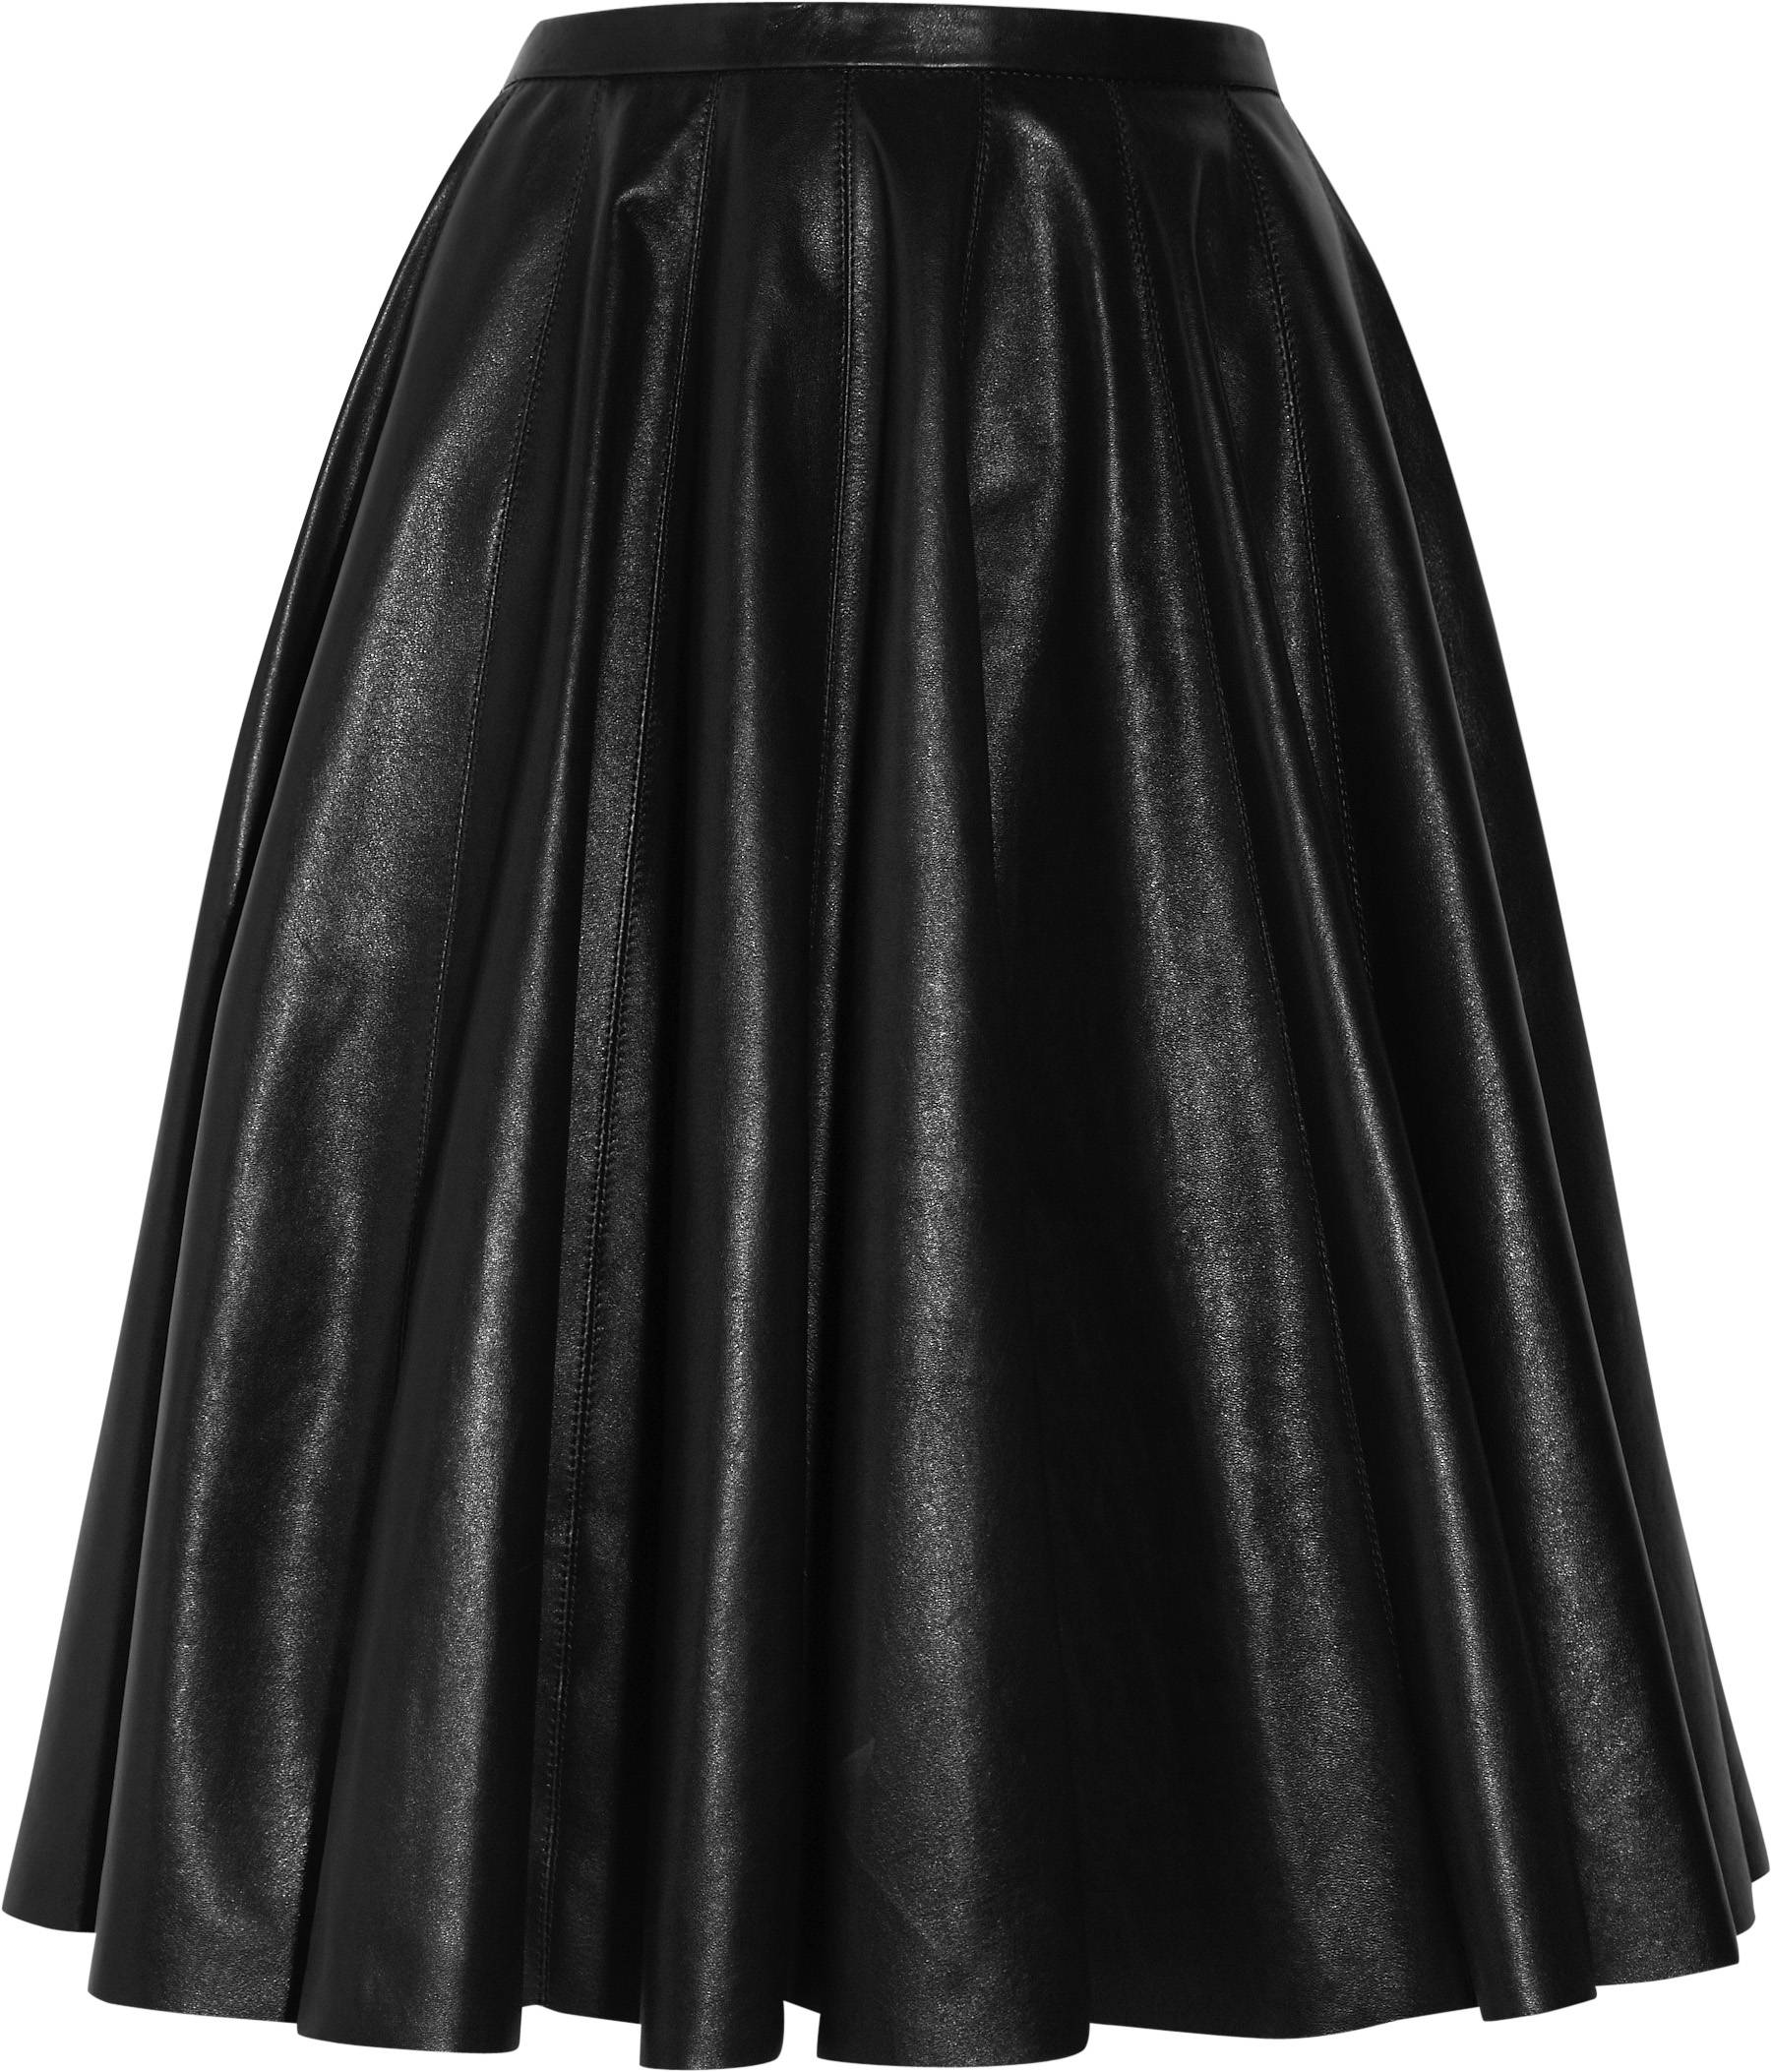 322569_McQ Alexander McQueen- Flat Pleat Leather Skirt - NET-A-PORTER